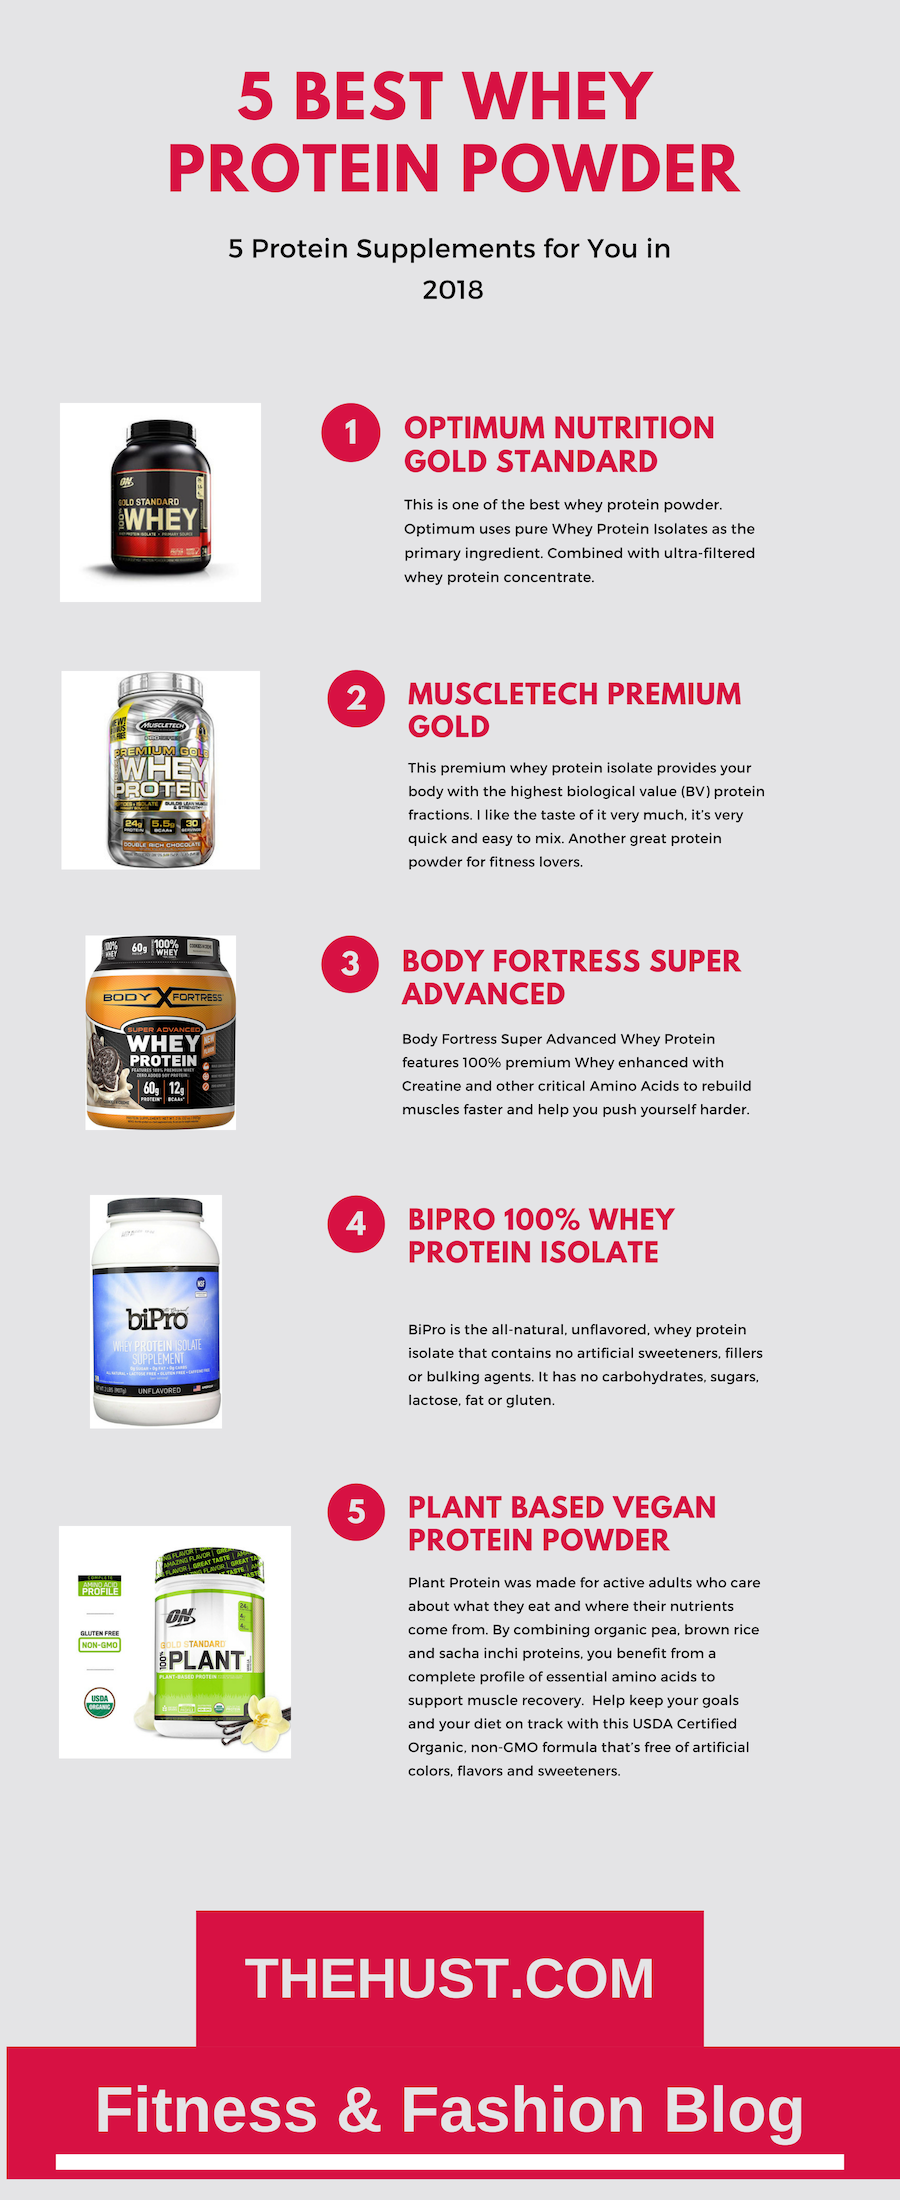 Top 5 Whey Protein Powers to Buy in 2018.. #wheyproteinrecipes